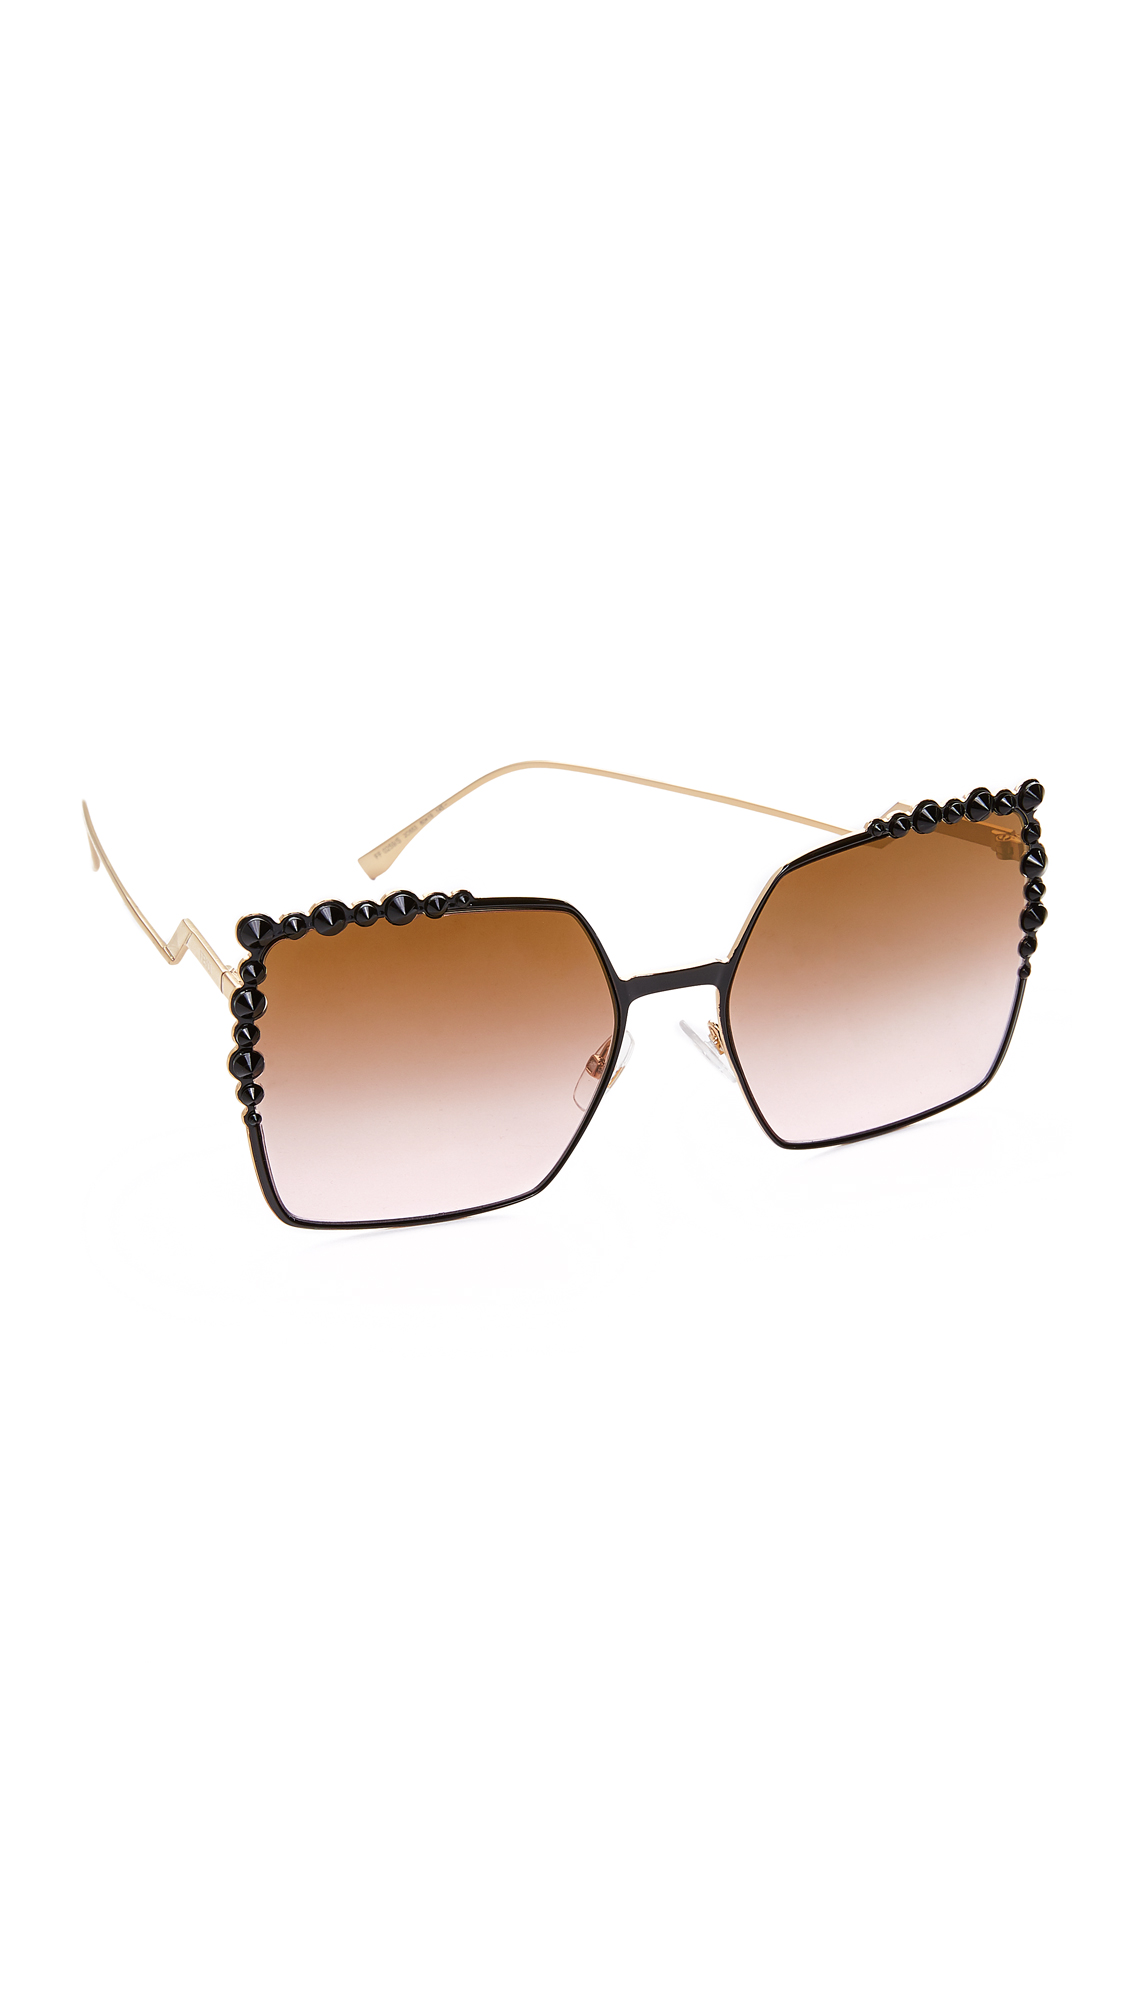 Fendi Square Sunglasses - Black/Brown